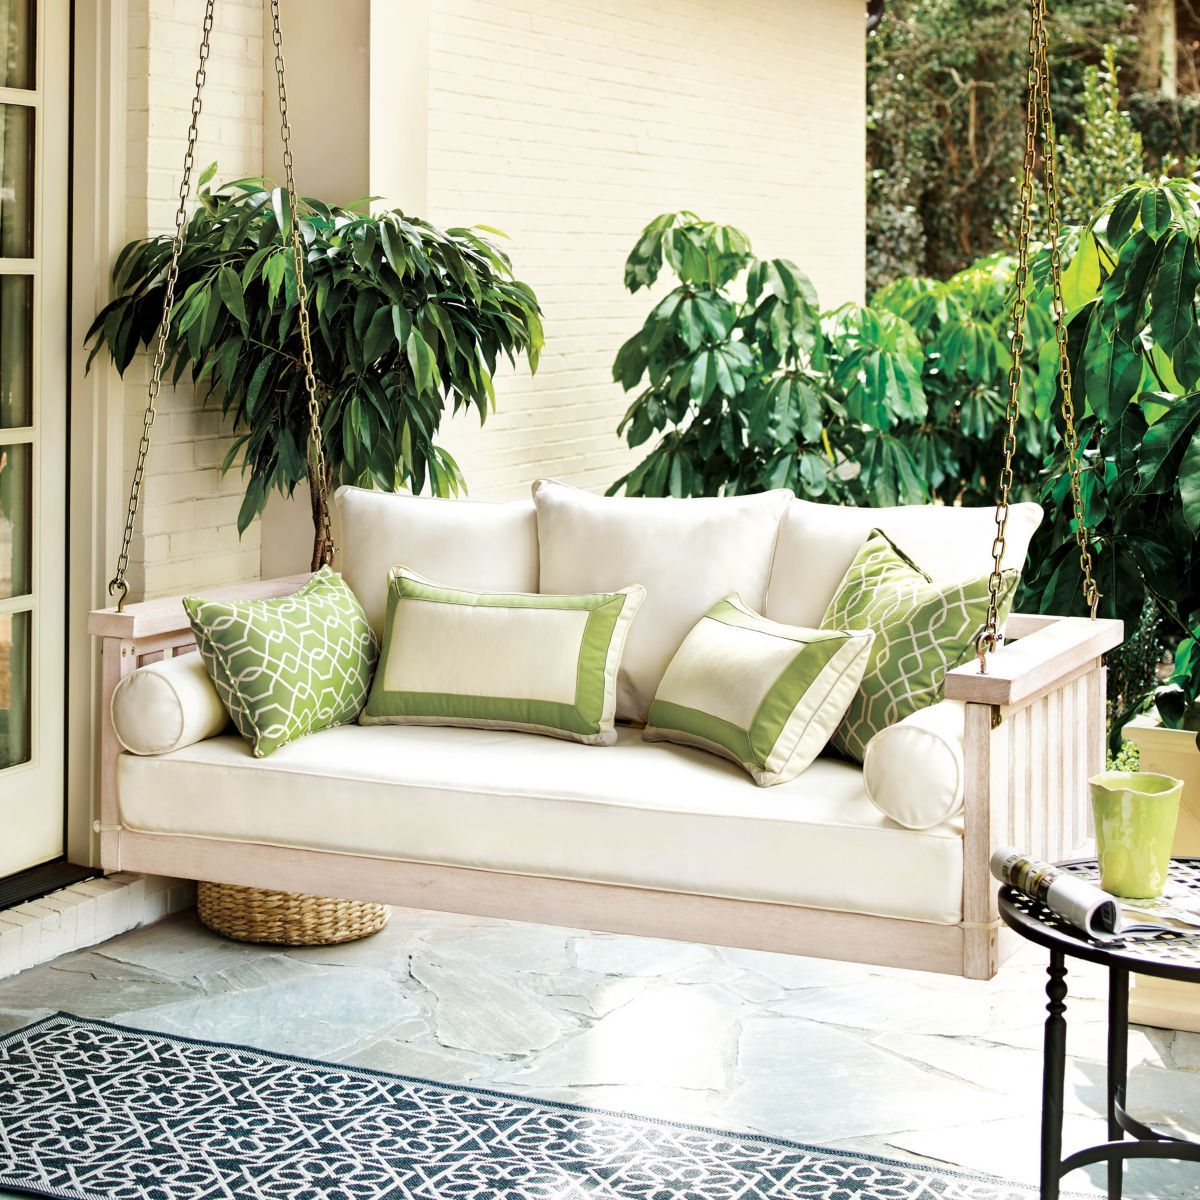 sunday porch swing porch swings porch and swings screened porches sunday porch swing ballard design 799 00